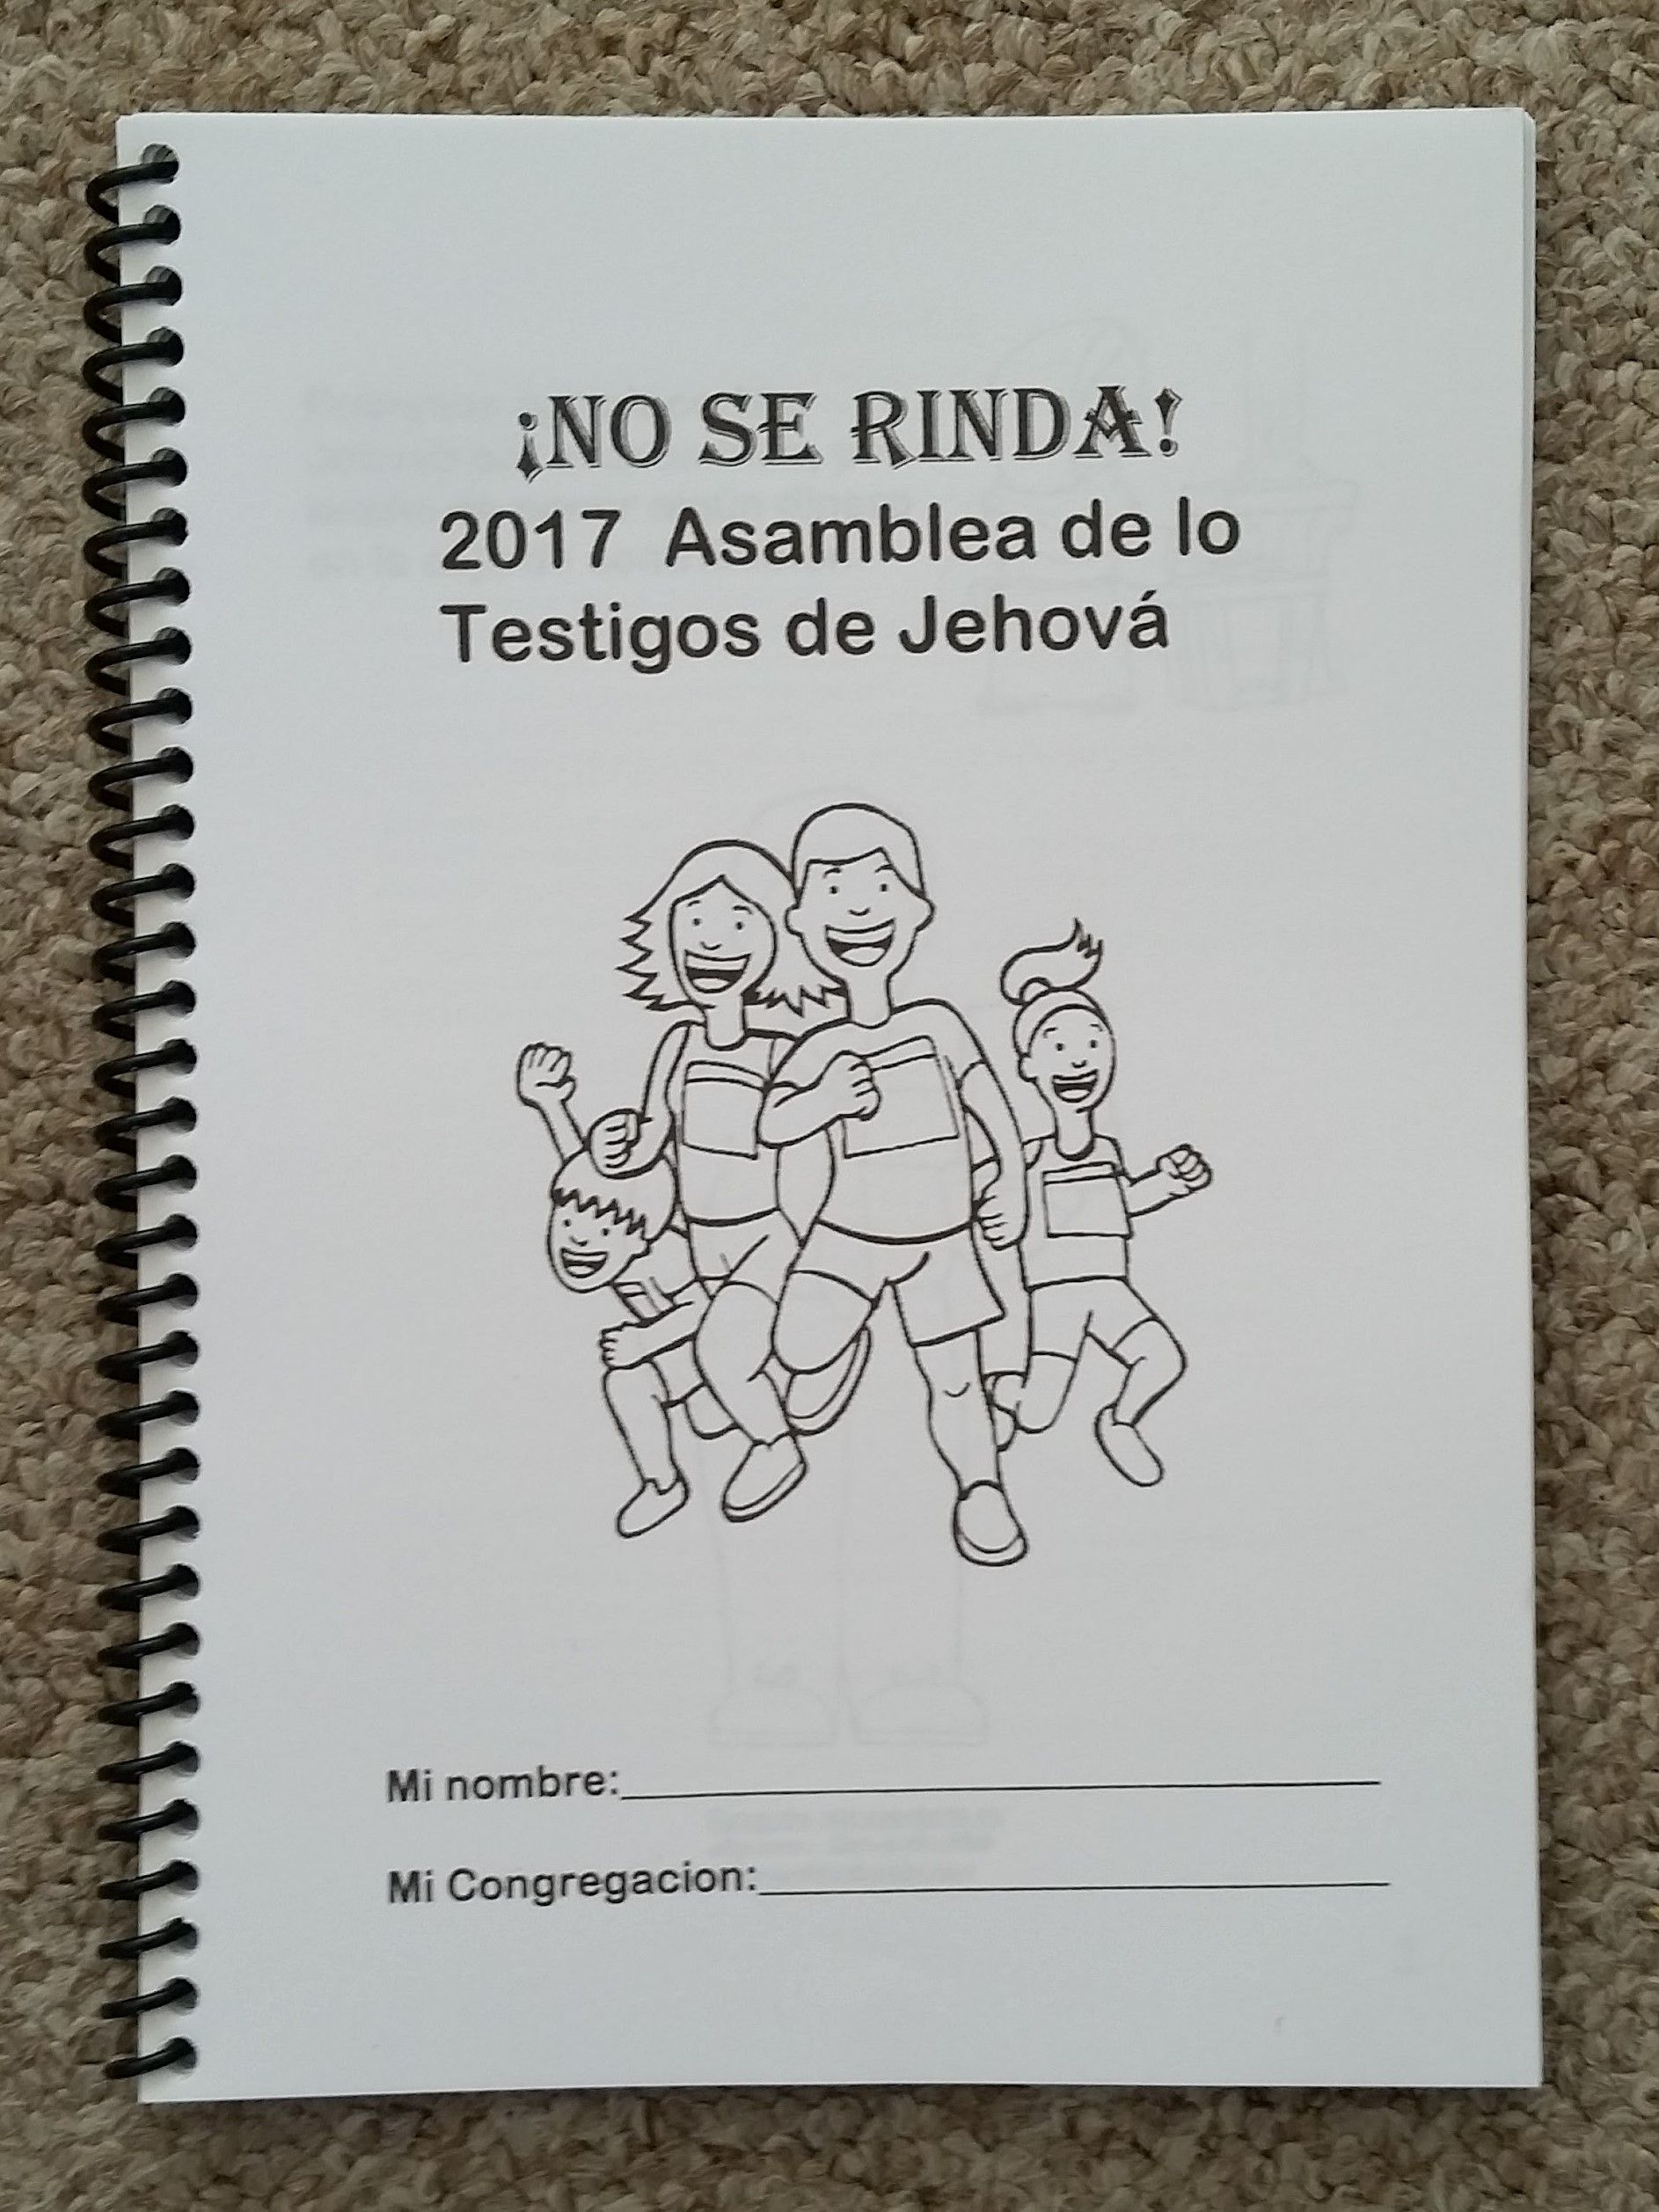 Spanish Jw Regional Convention No Se Rinda Asamblea Notebook For Teens And Adults Espanol